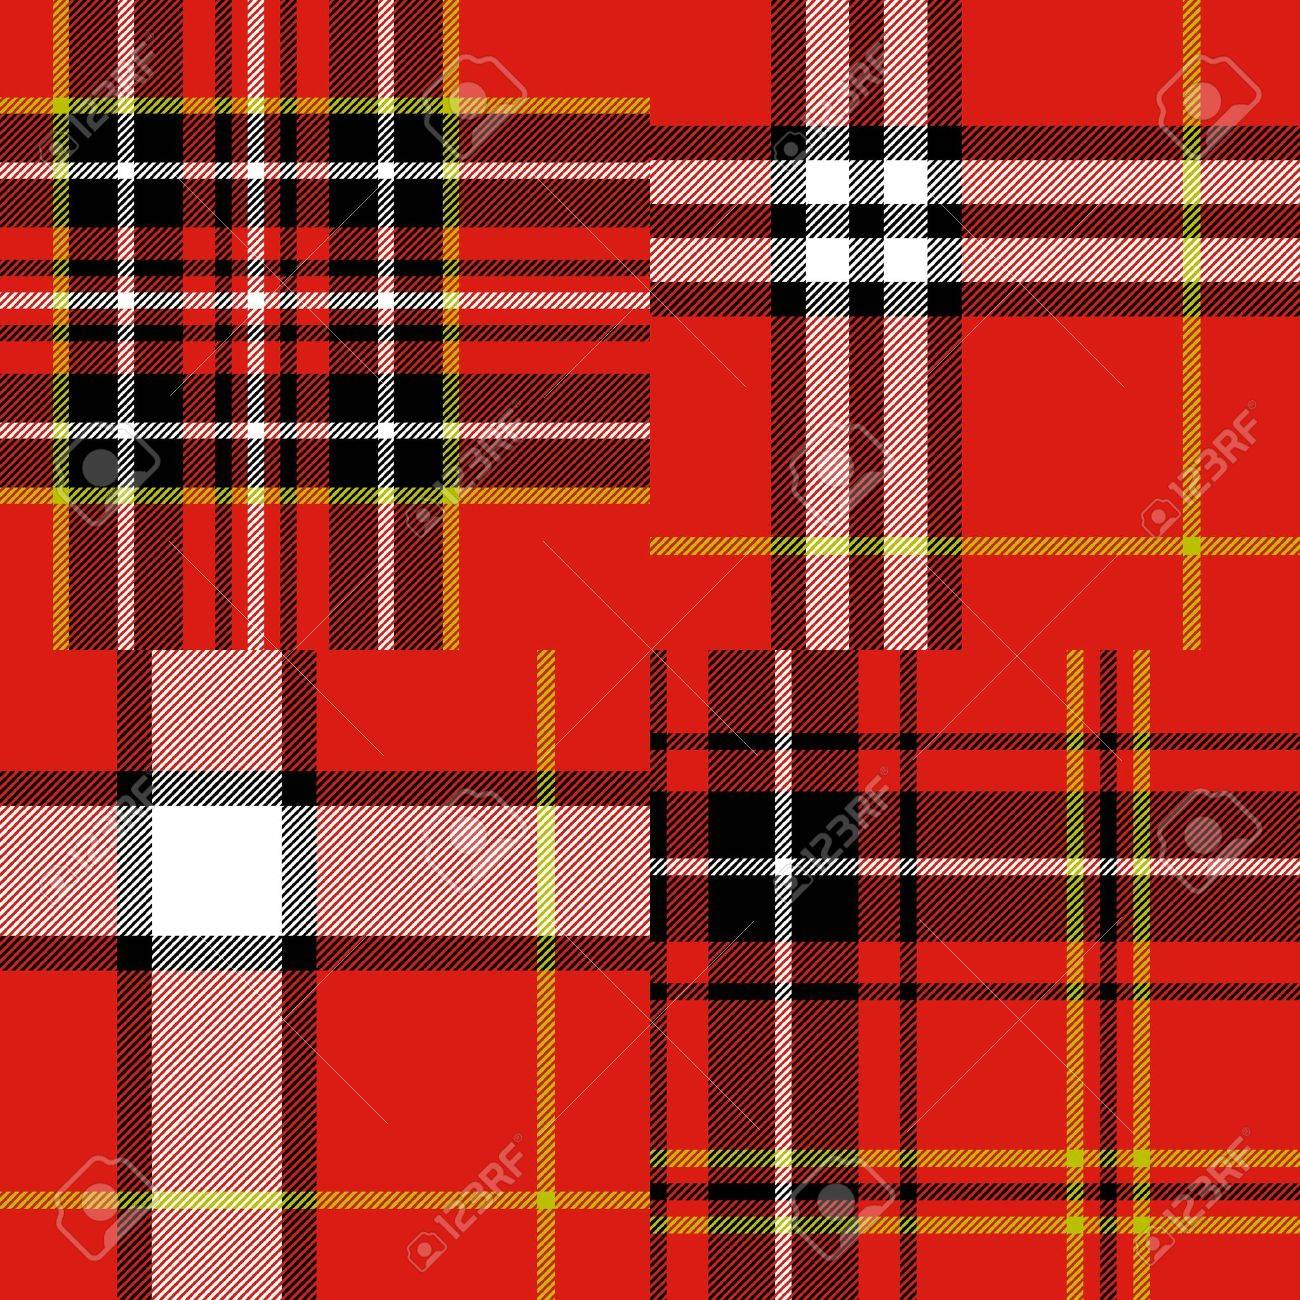 Scottish traditional tartan fabric seamless pattern set in red and black and white, vector - 18551314